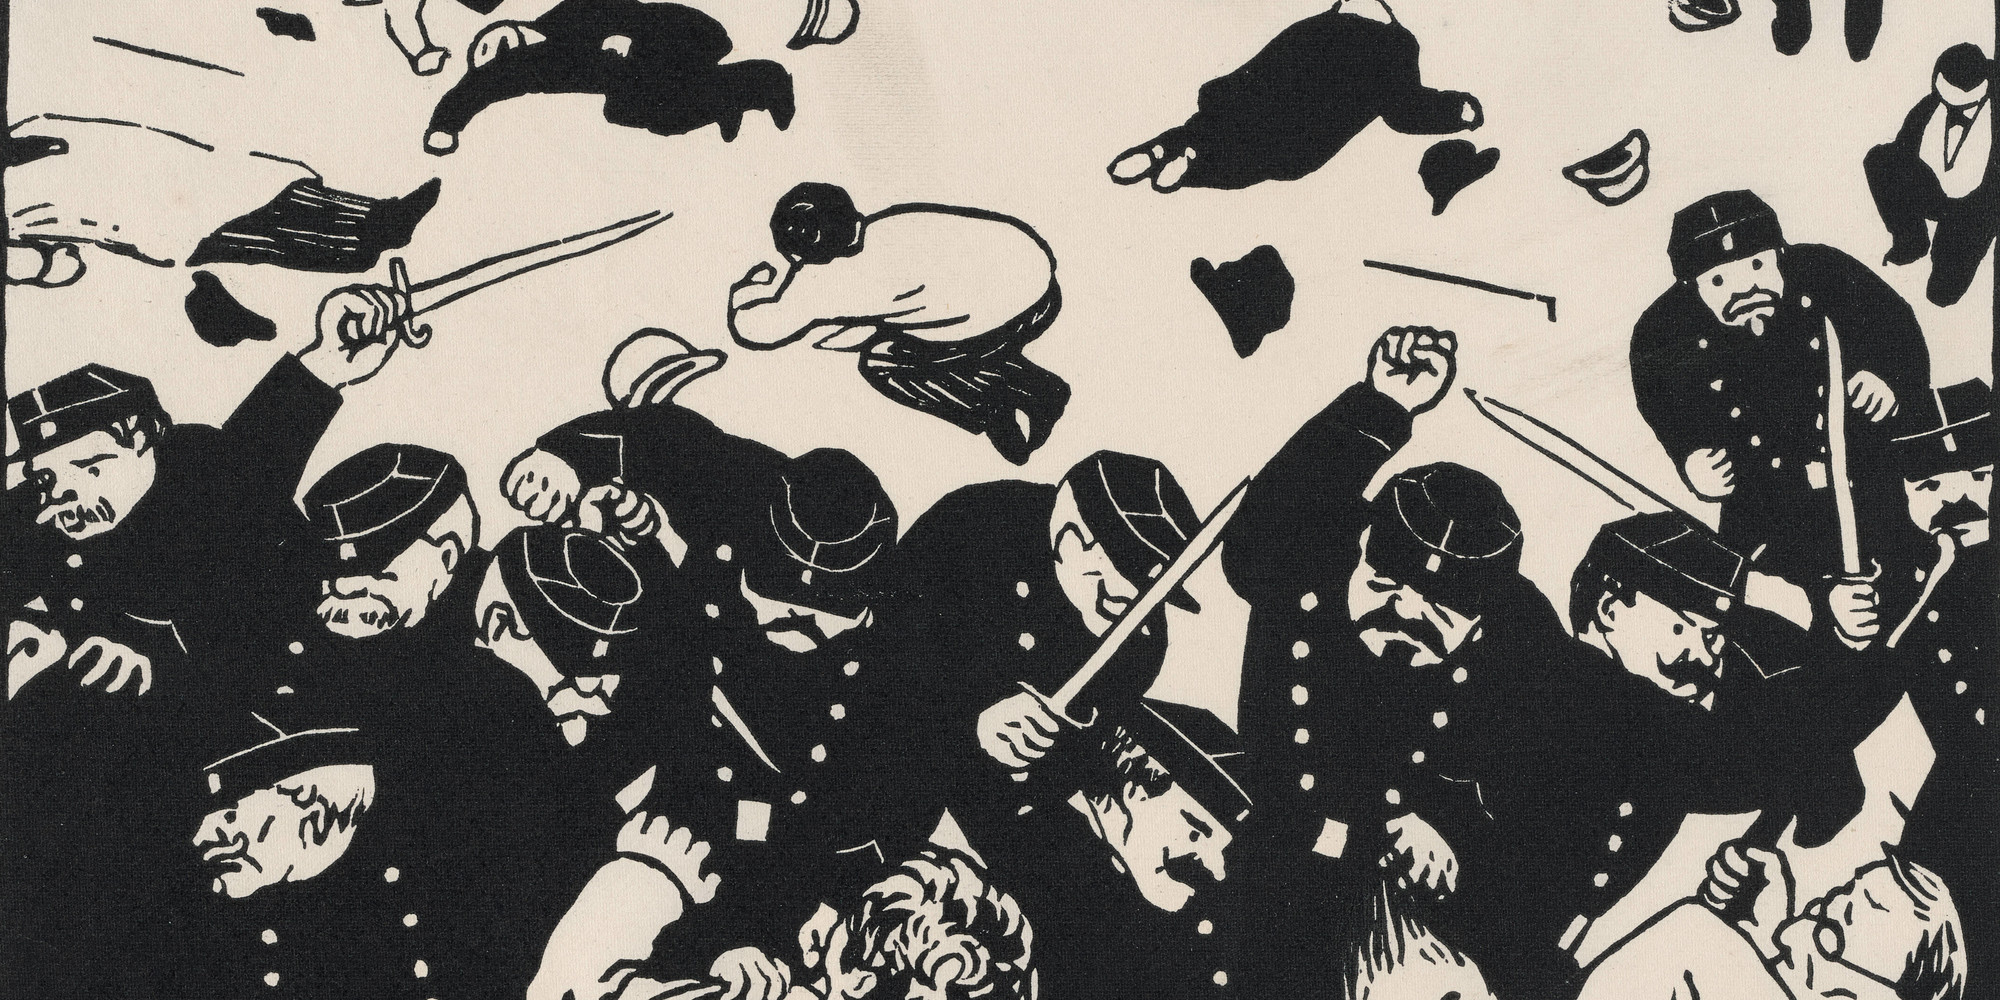 "Félix Vallotton. The Charge (La charge). 1893. Woodcut, composition: 7 7/8 × 10 1/4"" (20 x 26 cm); sheet: 10 3/16 × 12 3/4"" (25.9 × 32.4 cm). The Museum of Modern Art, New York. Larry Aldrich Fund"